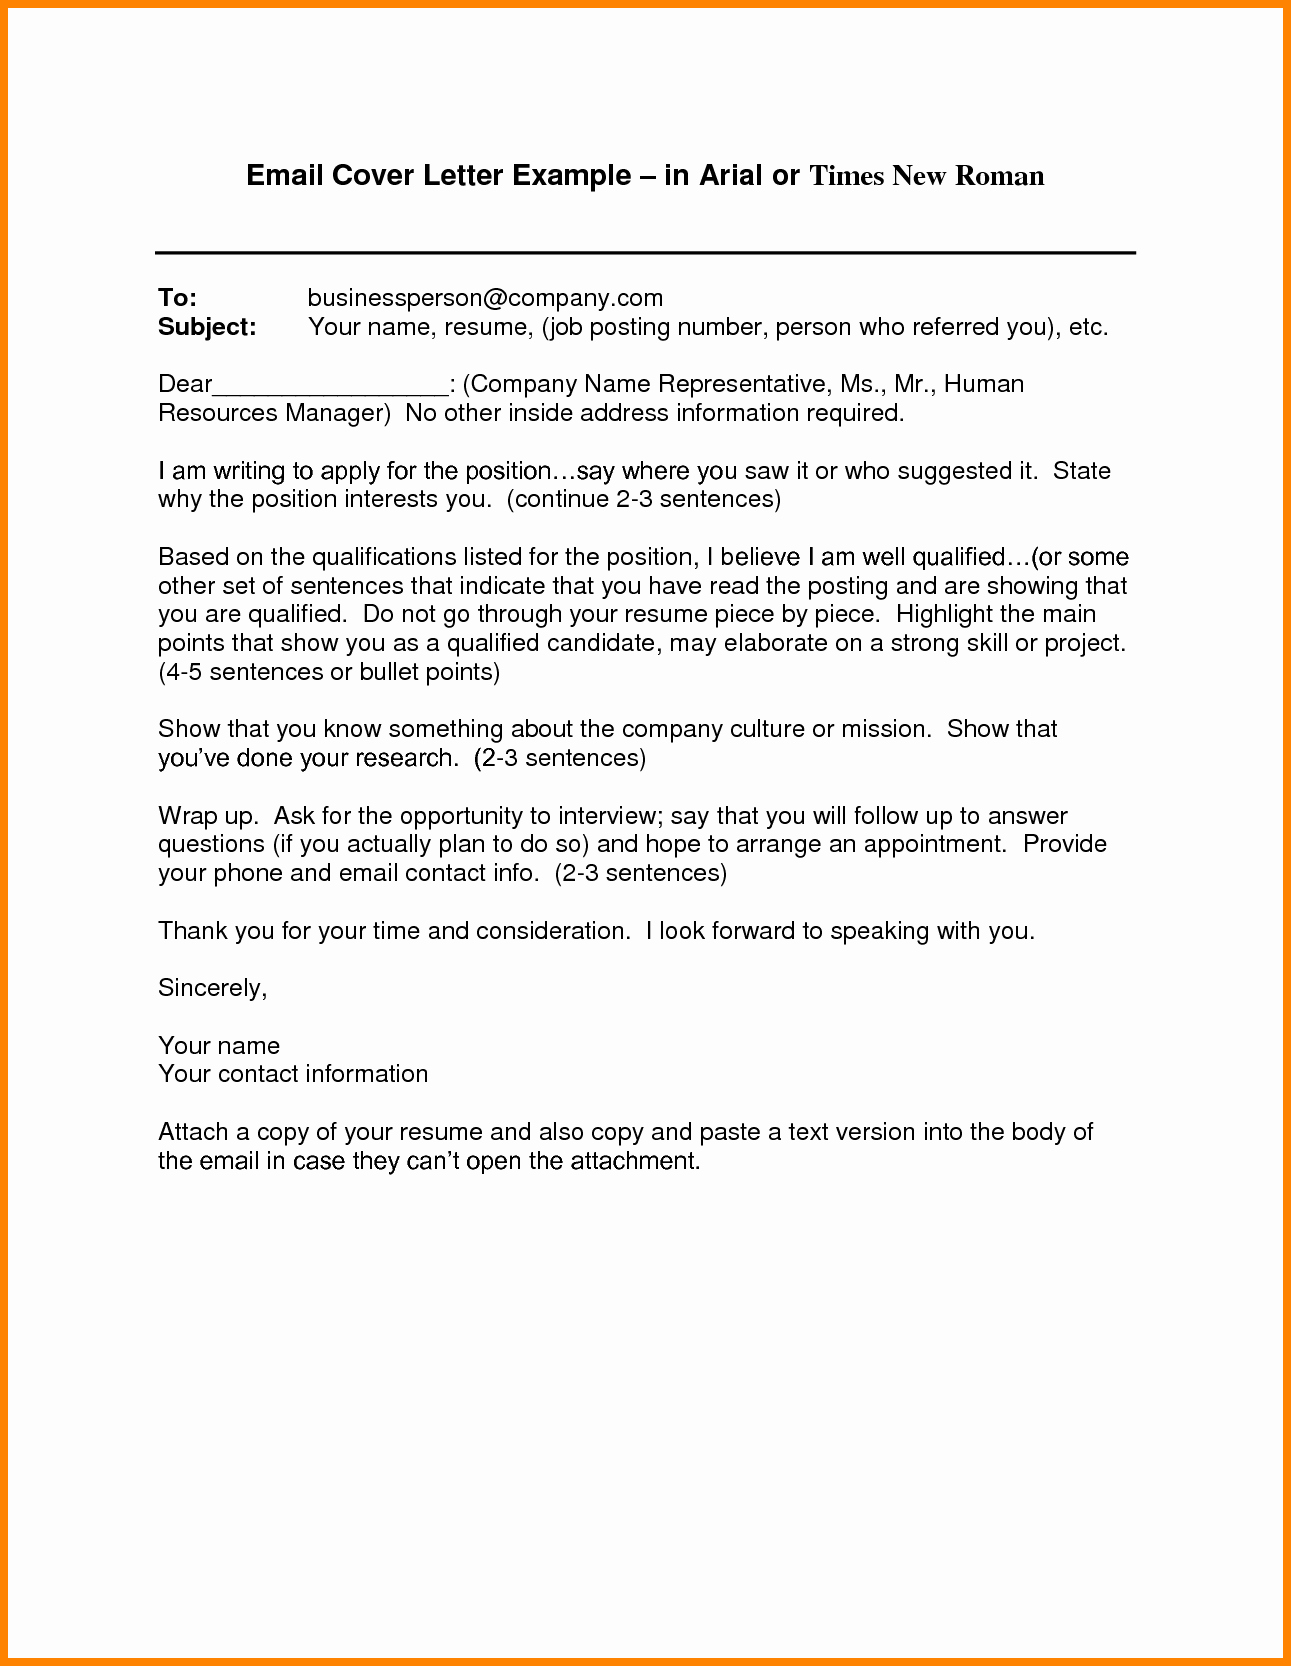 Email Cover Letter Template Best Of 6 Email Cover Letter Templates